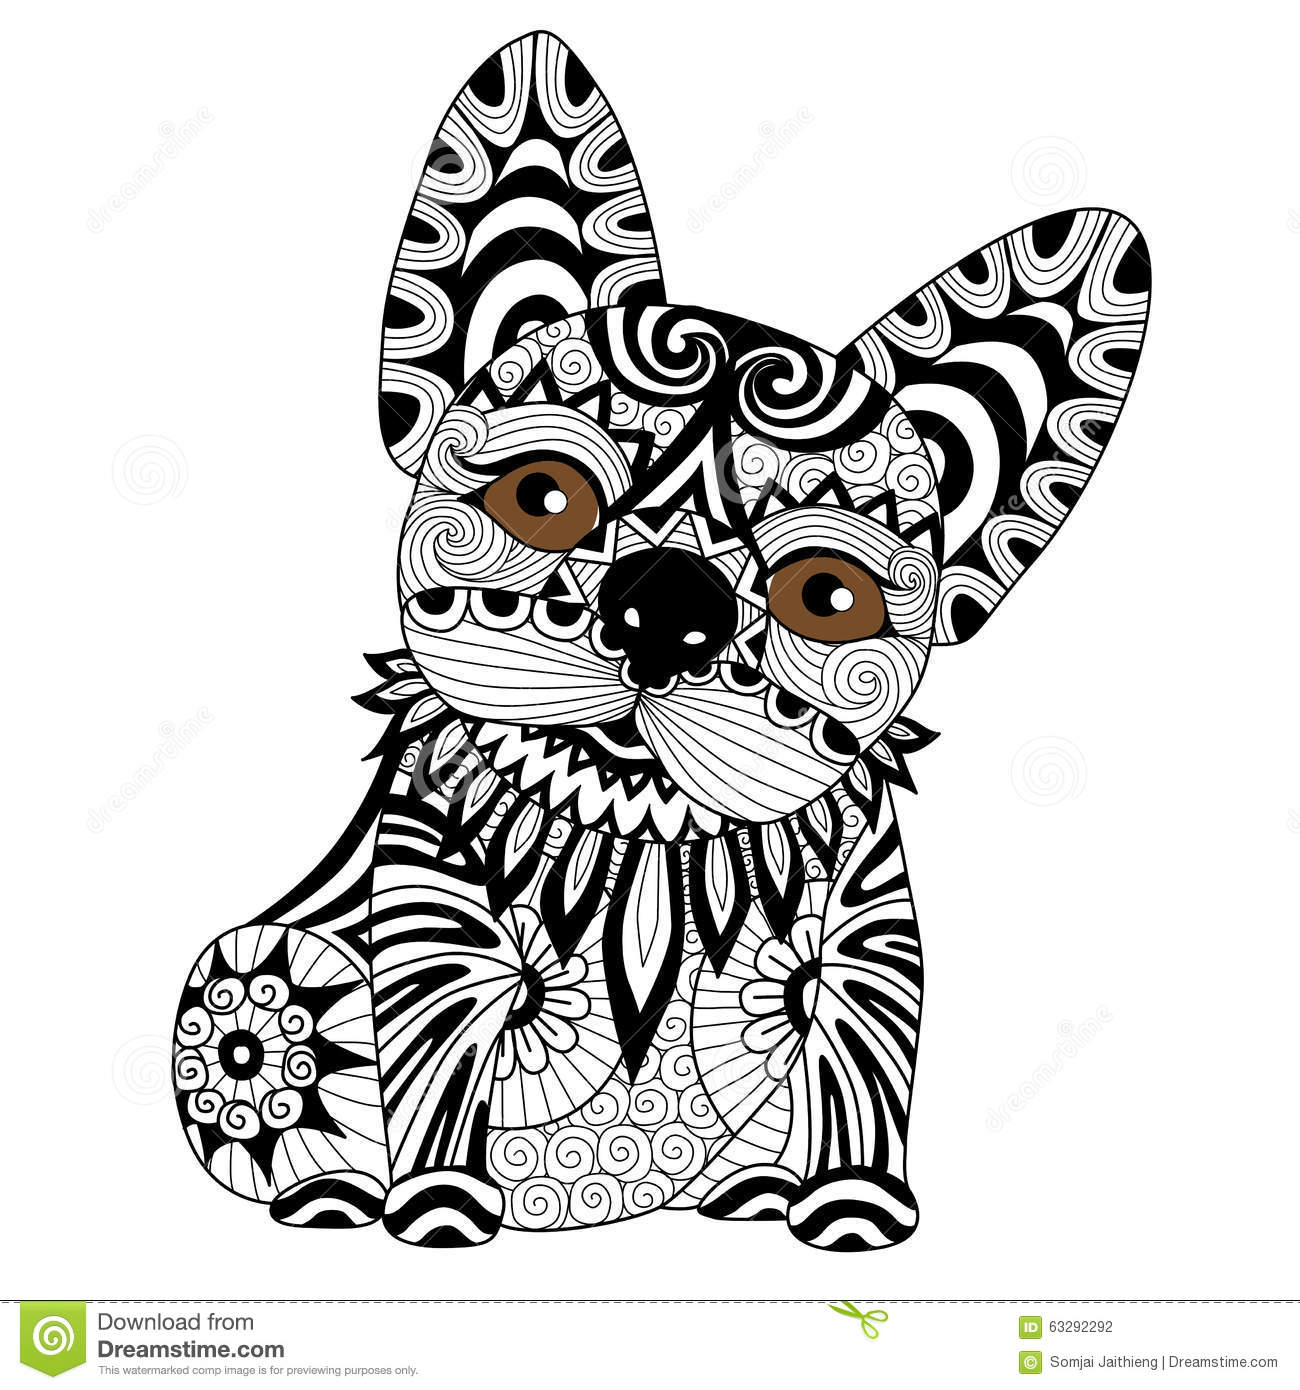 Hand Drawn Zentangle Bulldog Puppy For Coloring Page Stock Vector ...